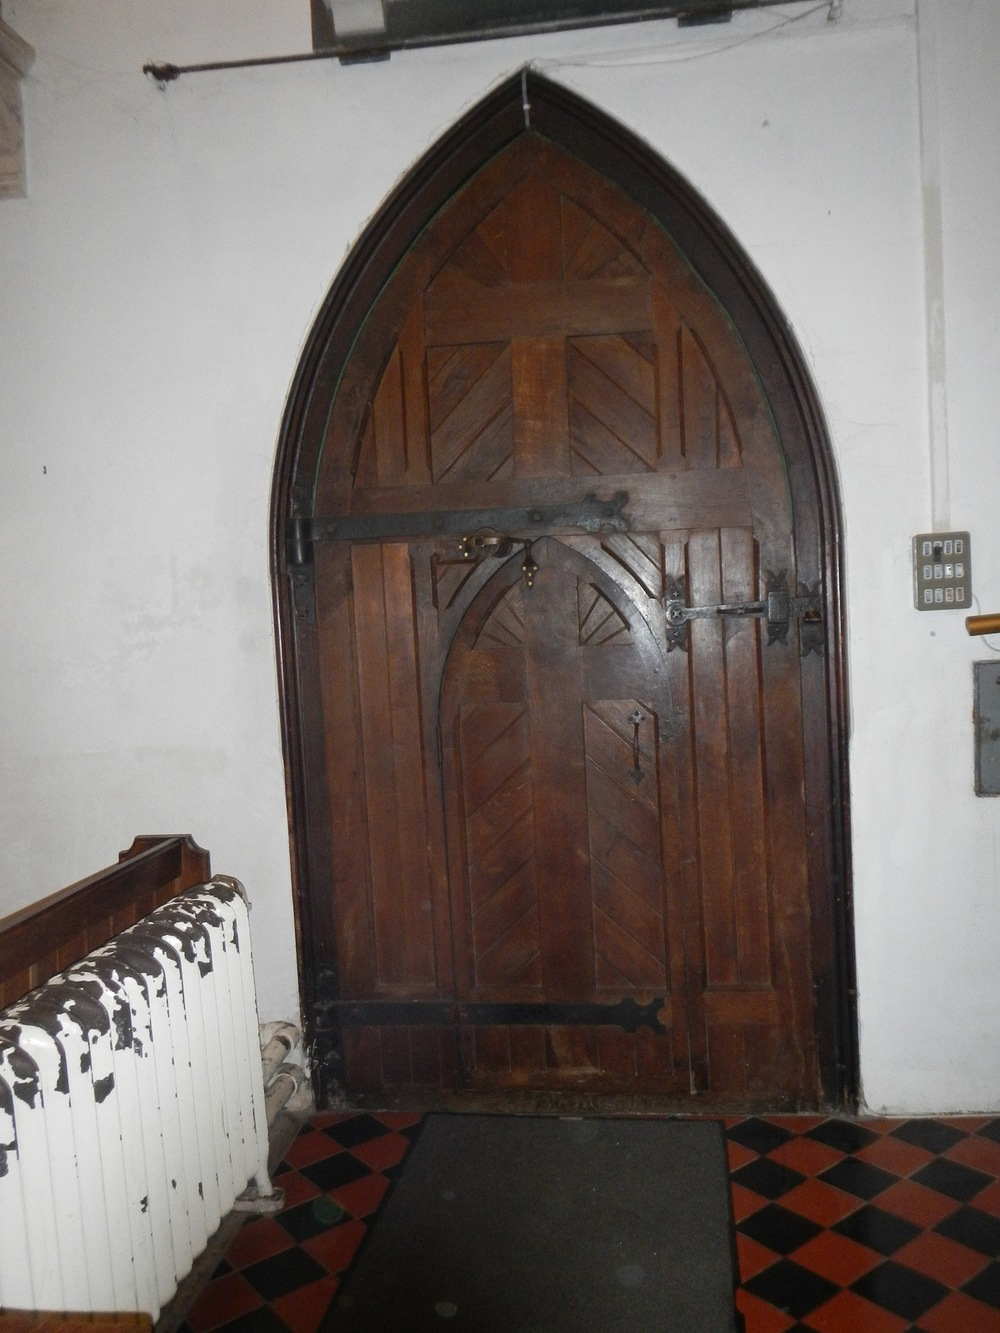 A small interior door. We had to bend to walk through it.